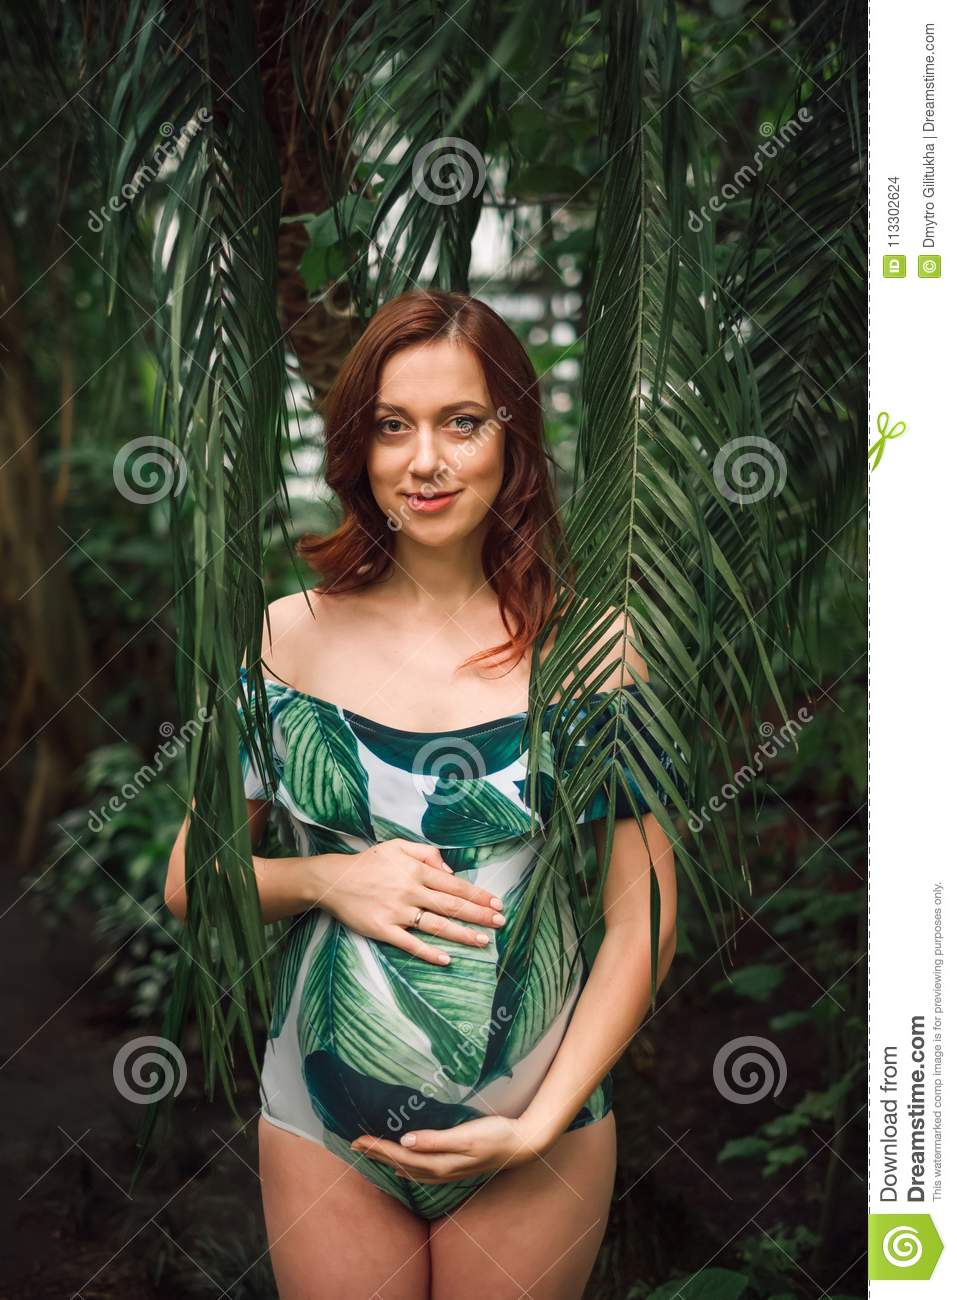 ff1c9dd7e7d0d Attractive soon to be mom with a natural beauty and long red hair wearing  floral swimsuit posing among palm leaves at tropical forest, caressing her  belly ...